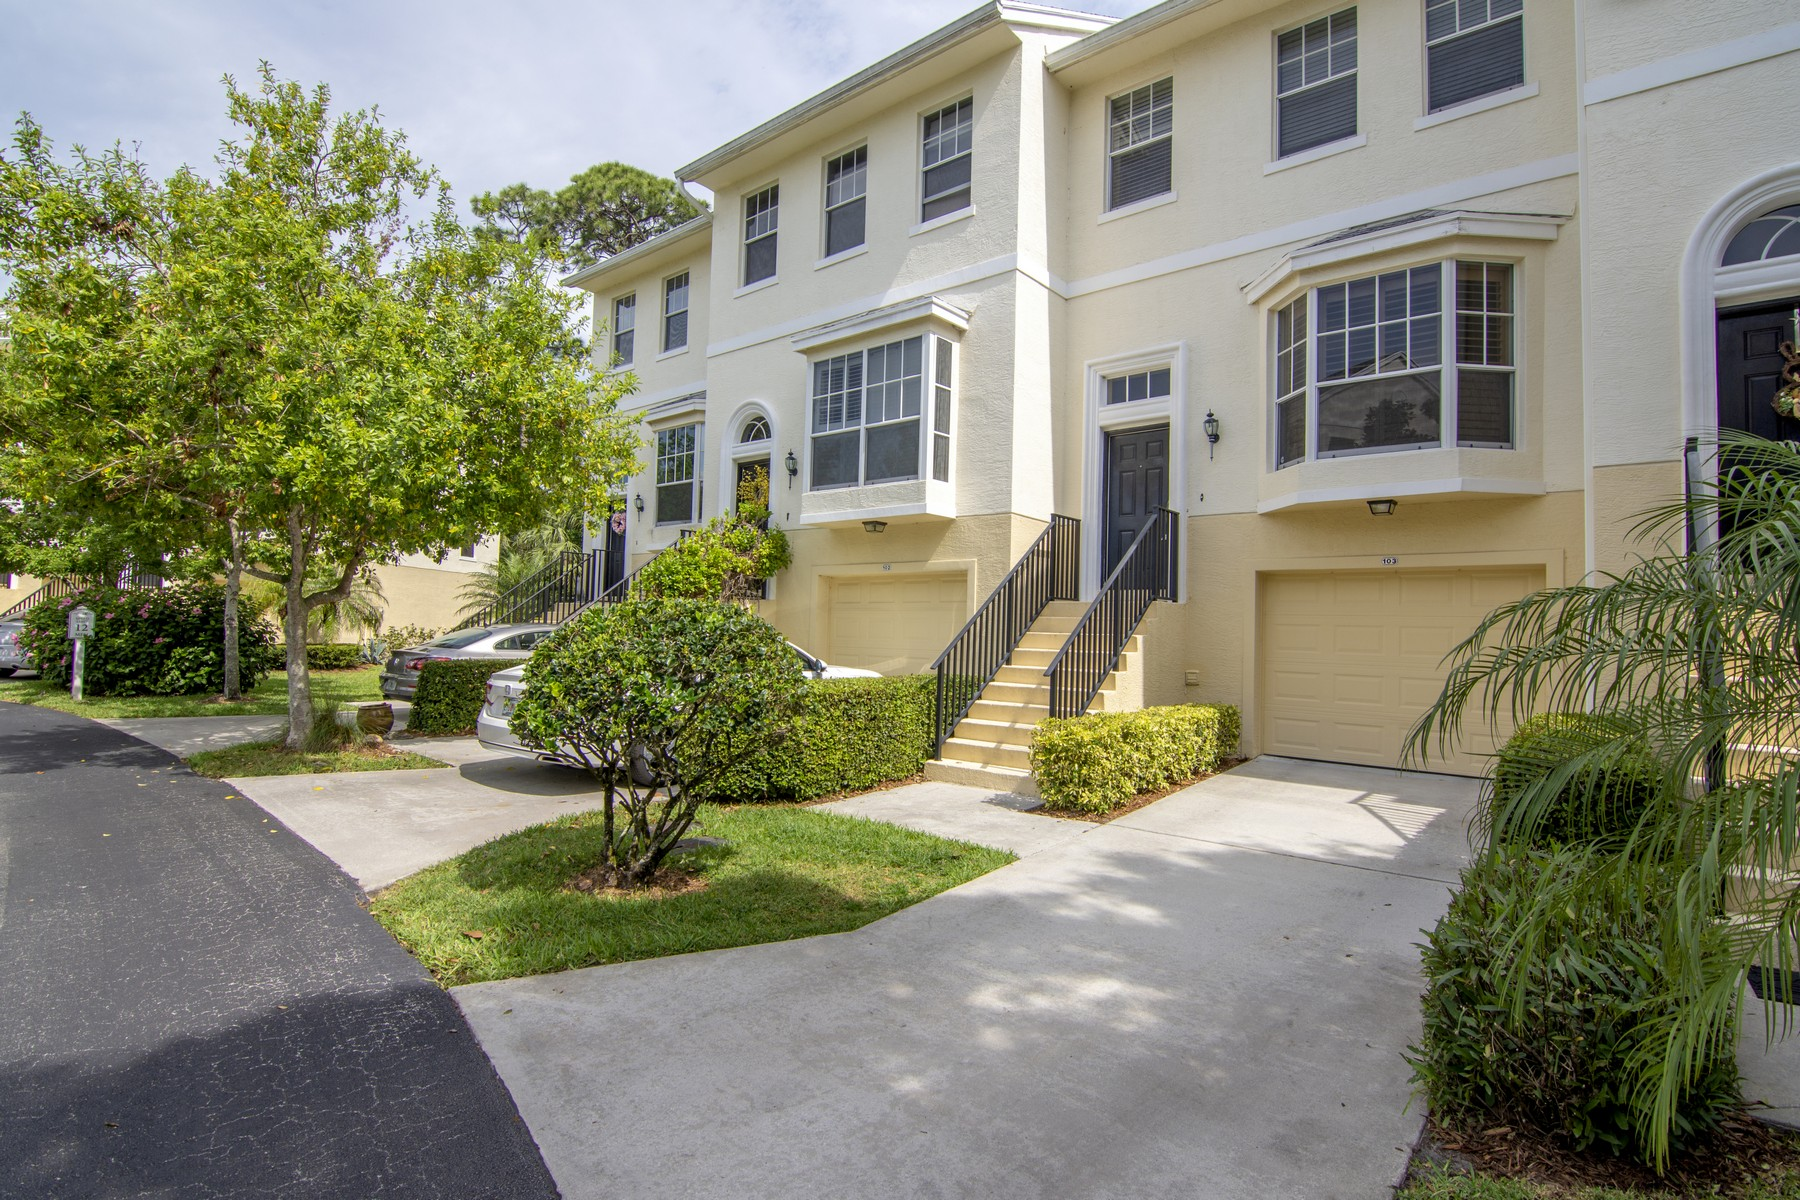 Townhouse for Sale at Practically Perfect Townhouse with Balconies 1650 42nd Sq Vero Beach, Florida 32960 United States